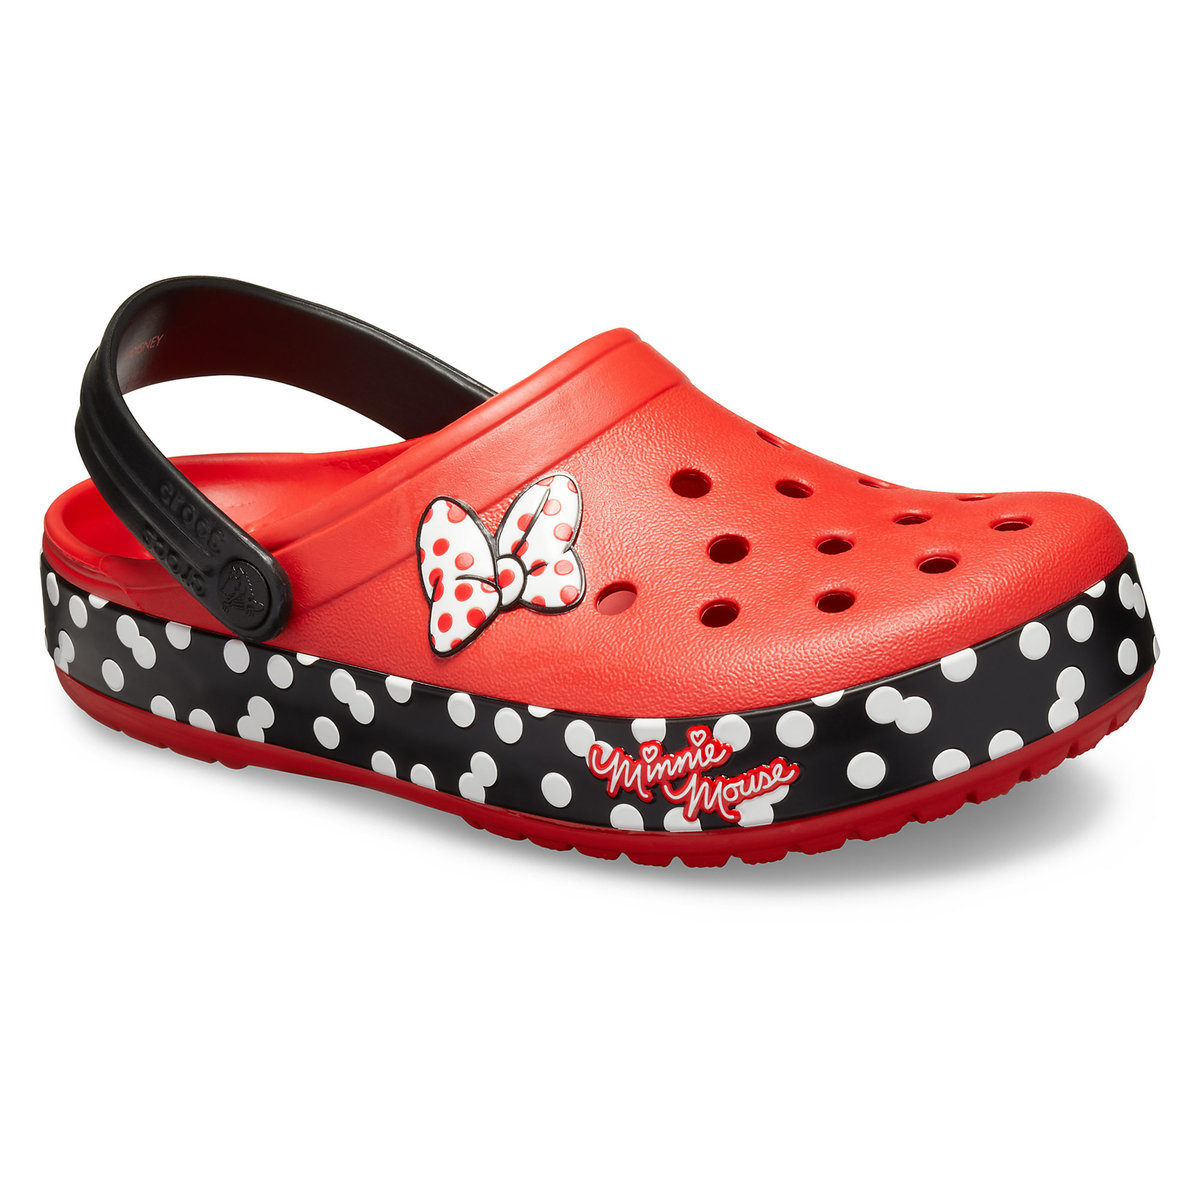 13496840d Product Image of Minnie Mouse Crocband Clogs for Women by Crocs   1